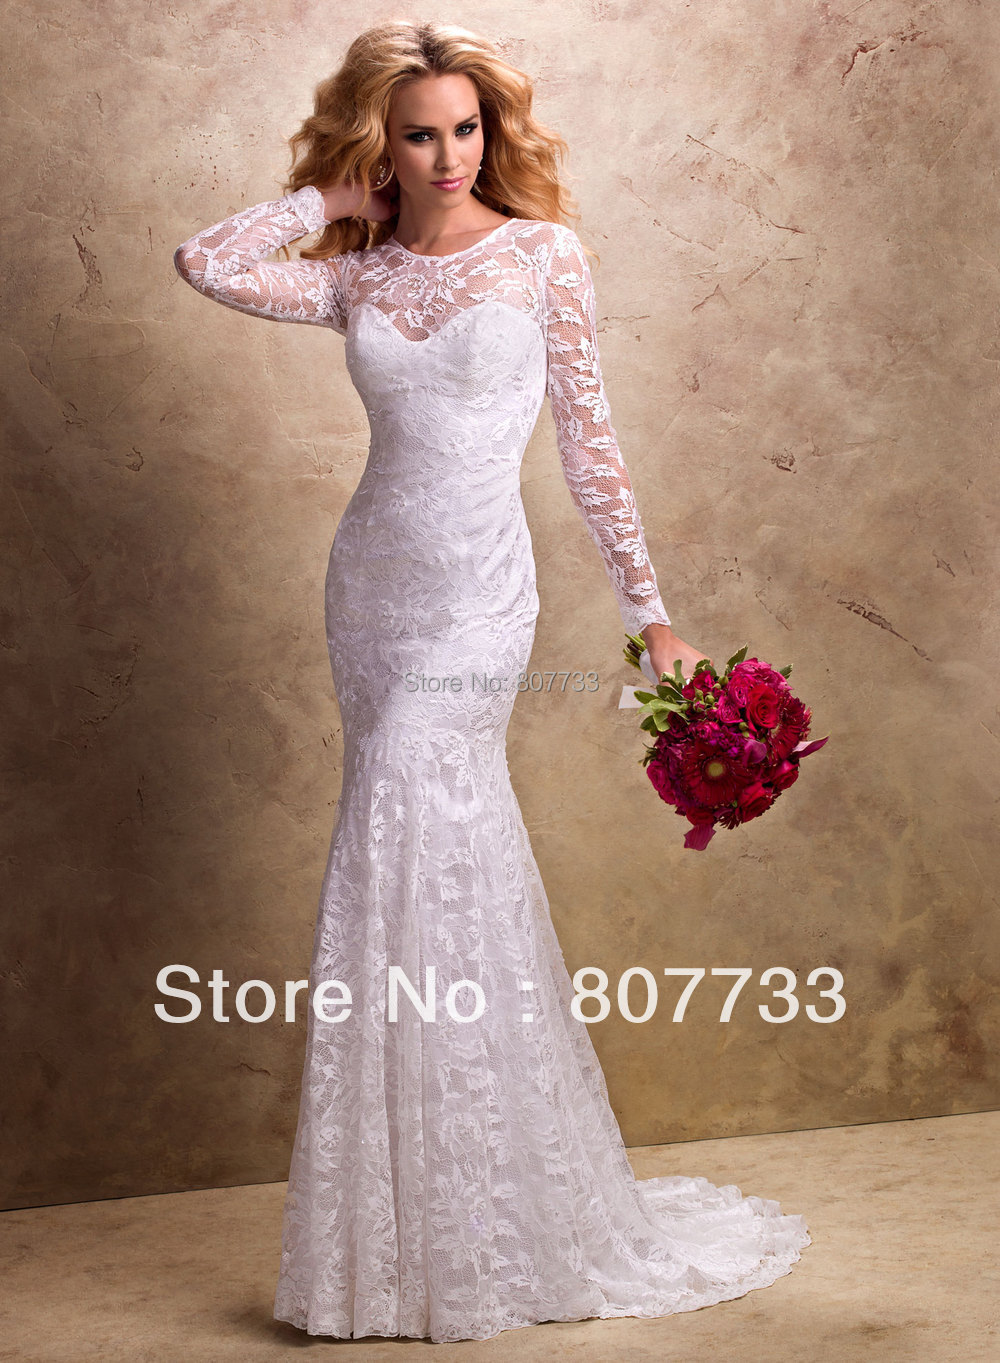 sexy mermaid wedding dresses Aliexpress com Buy TT85 long sleeve sexy Mermaid wedding dress from Reliable dress shirts for men cheap suppliers on JM Bridals